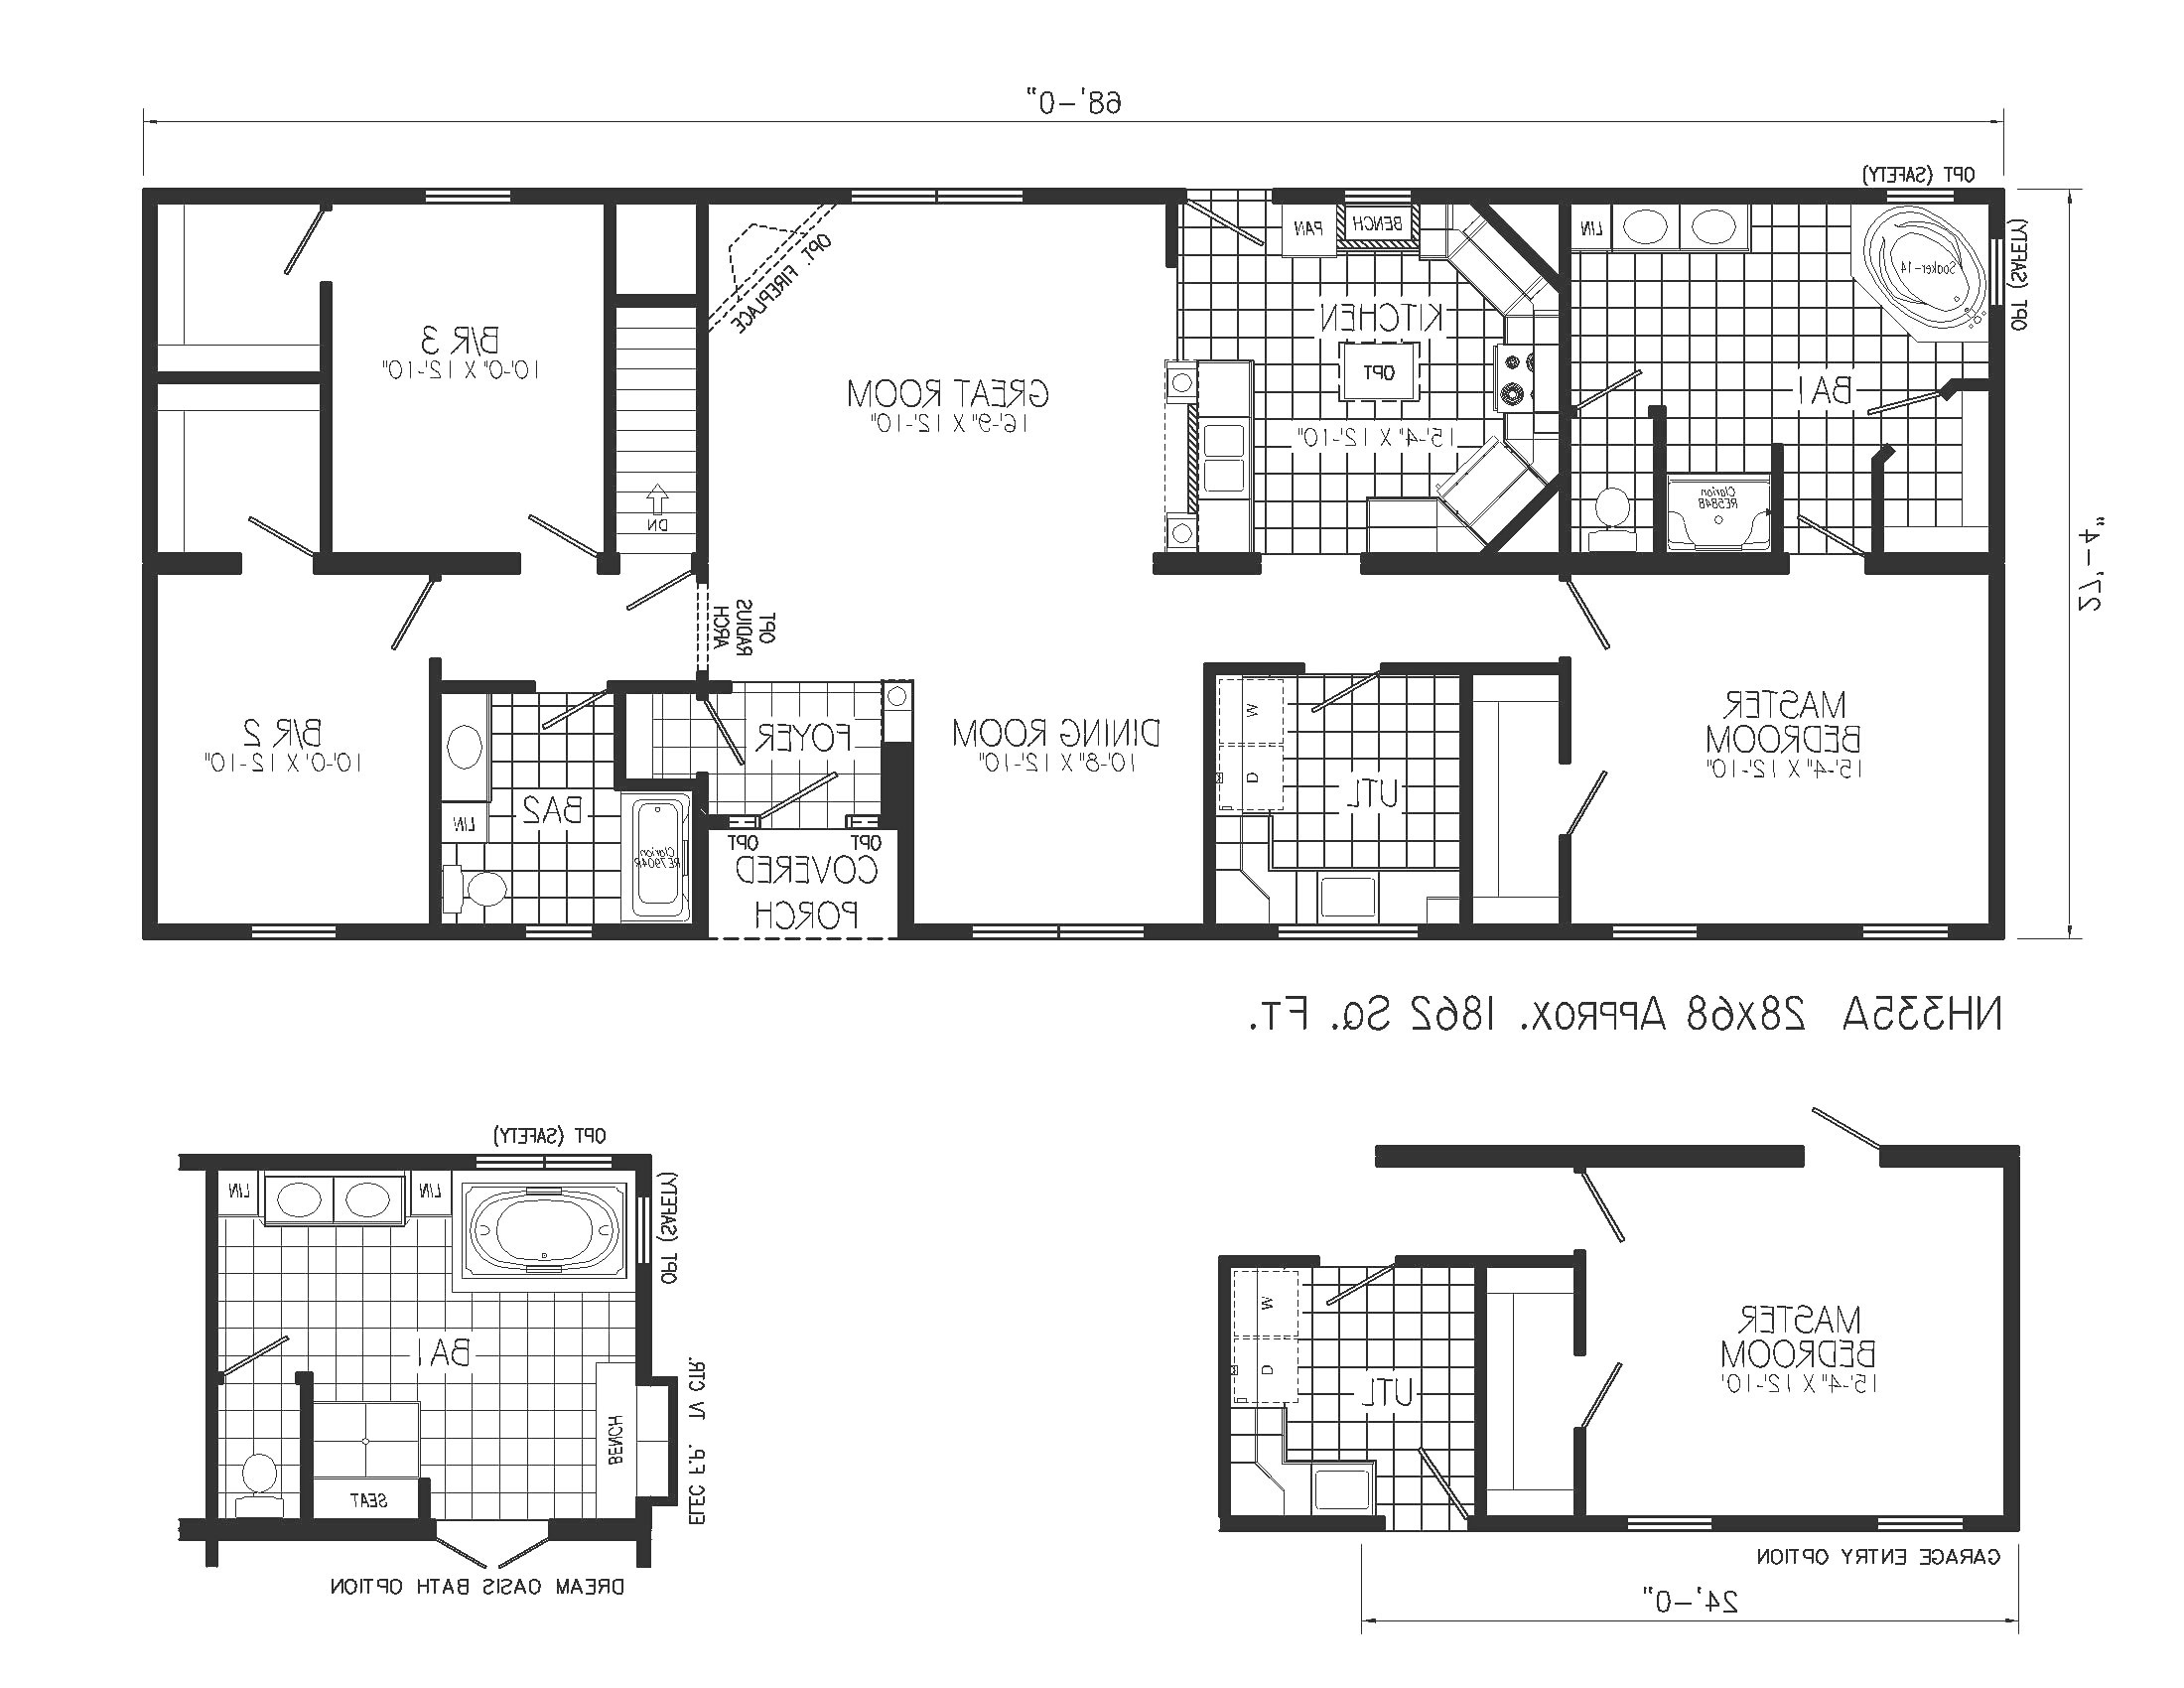 2 bedroom bath house plans with wrap around porch